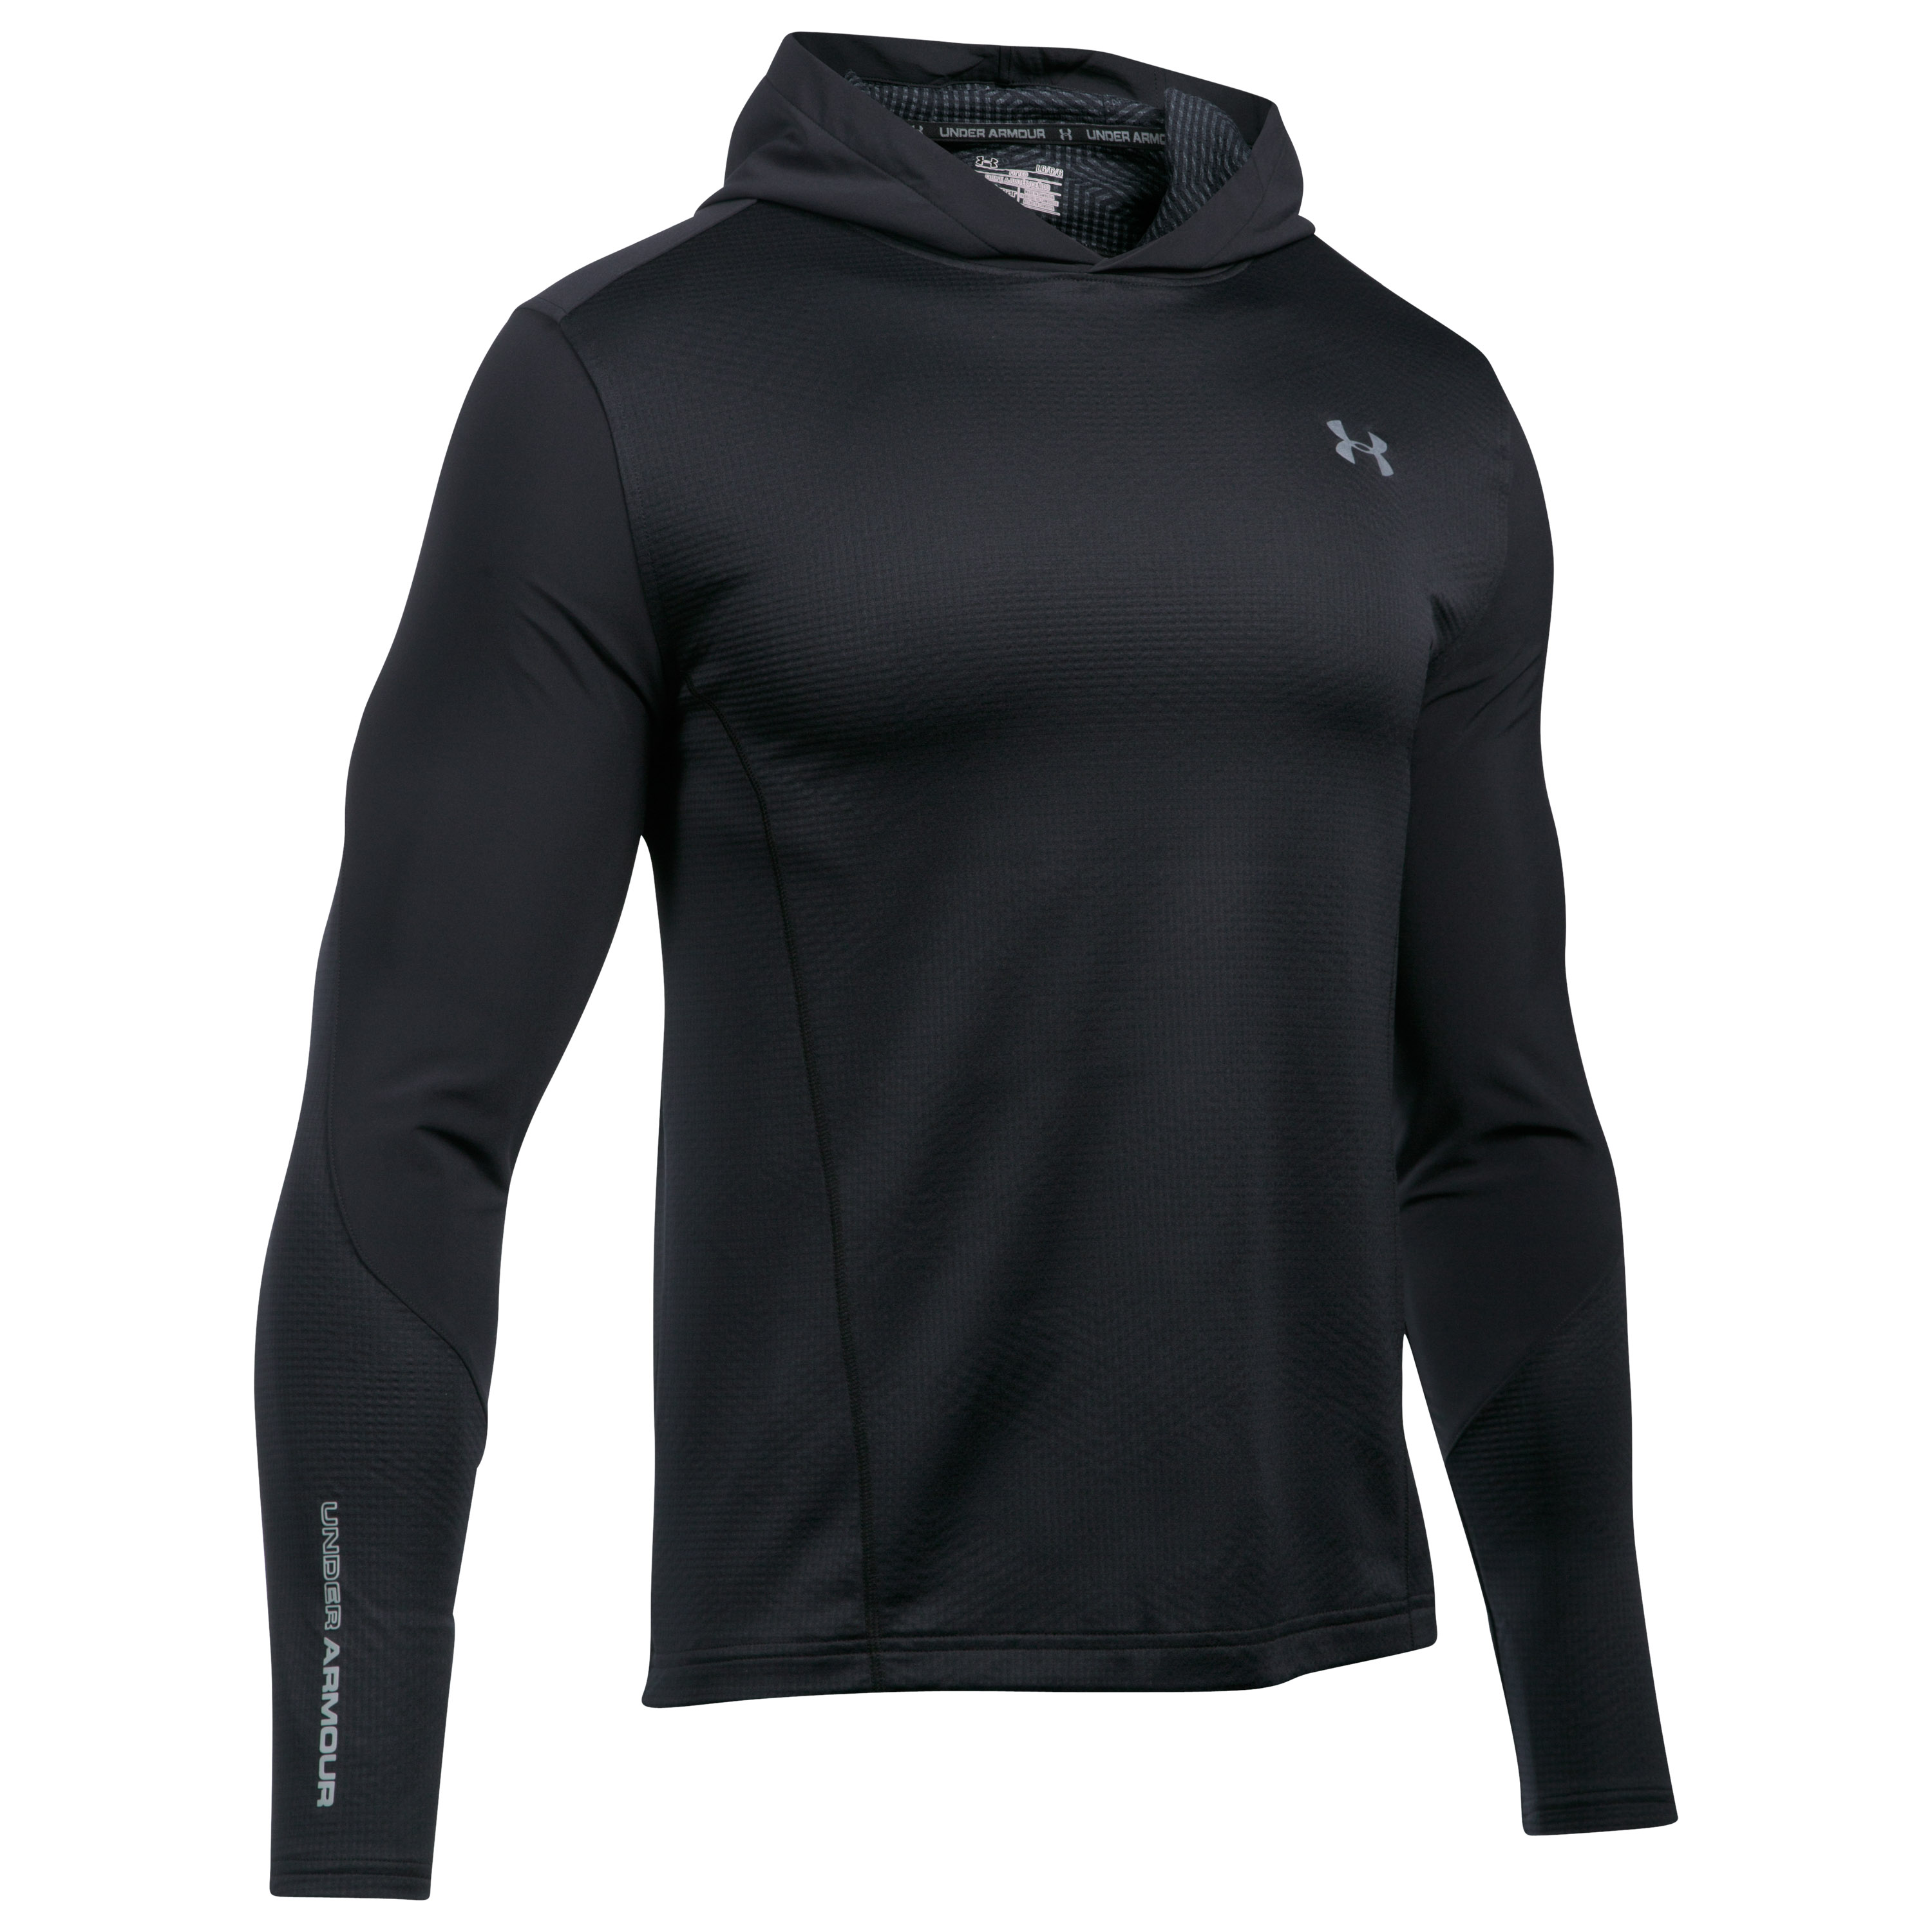 Under Armour Pullover Infrared Grid black